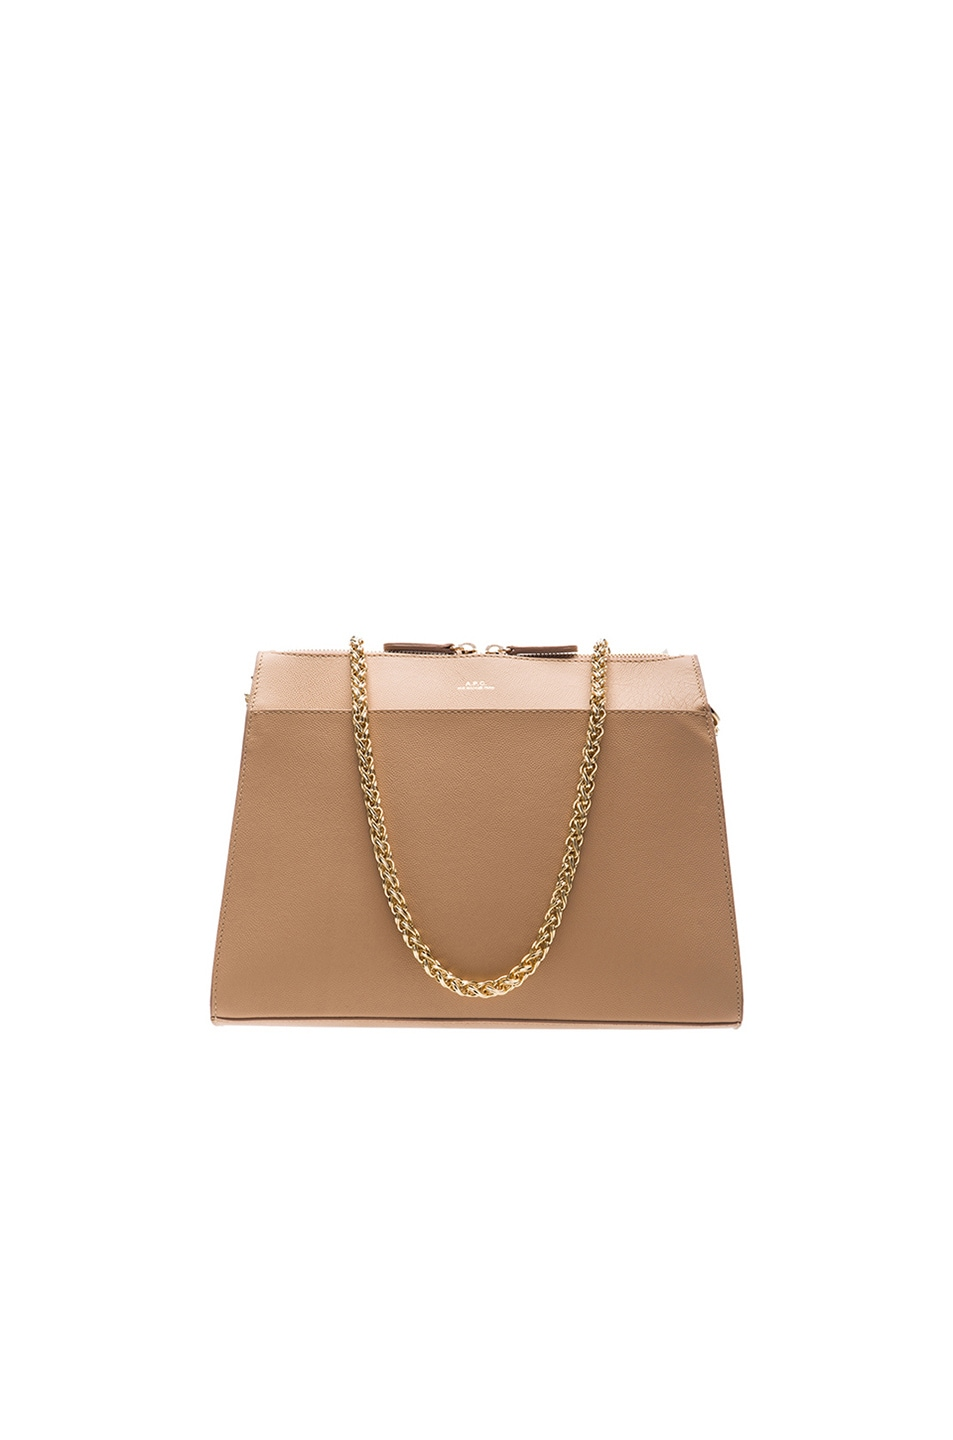 Image 1 of A.P.C. Edith Bag in Beige Rose